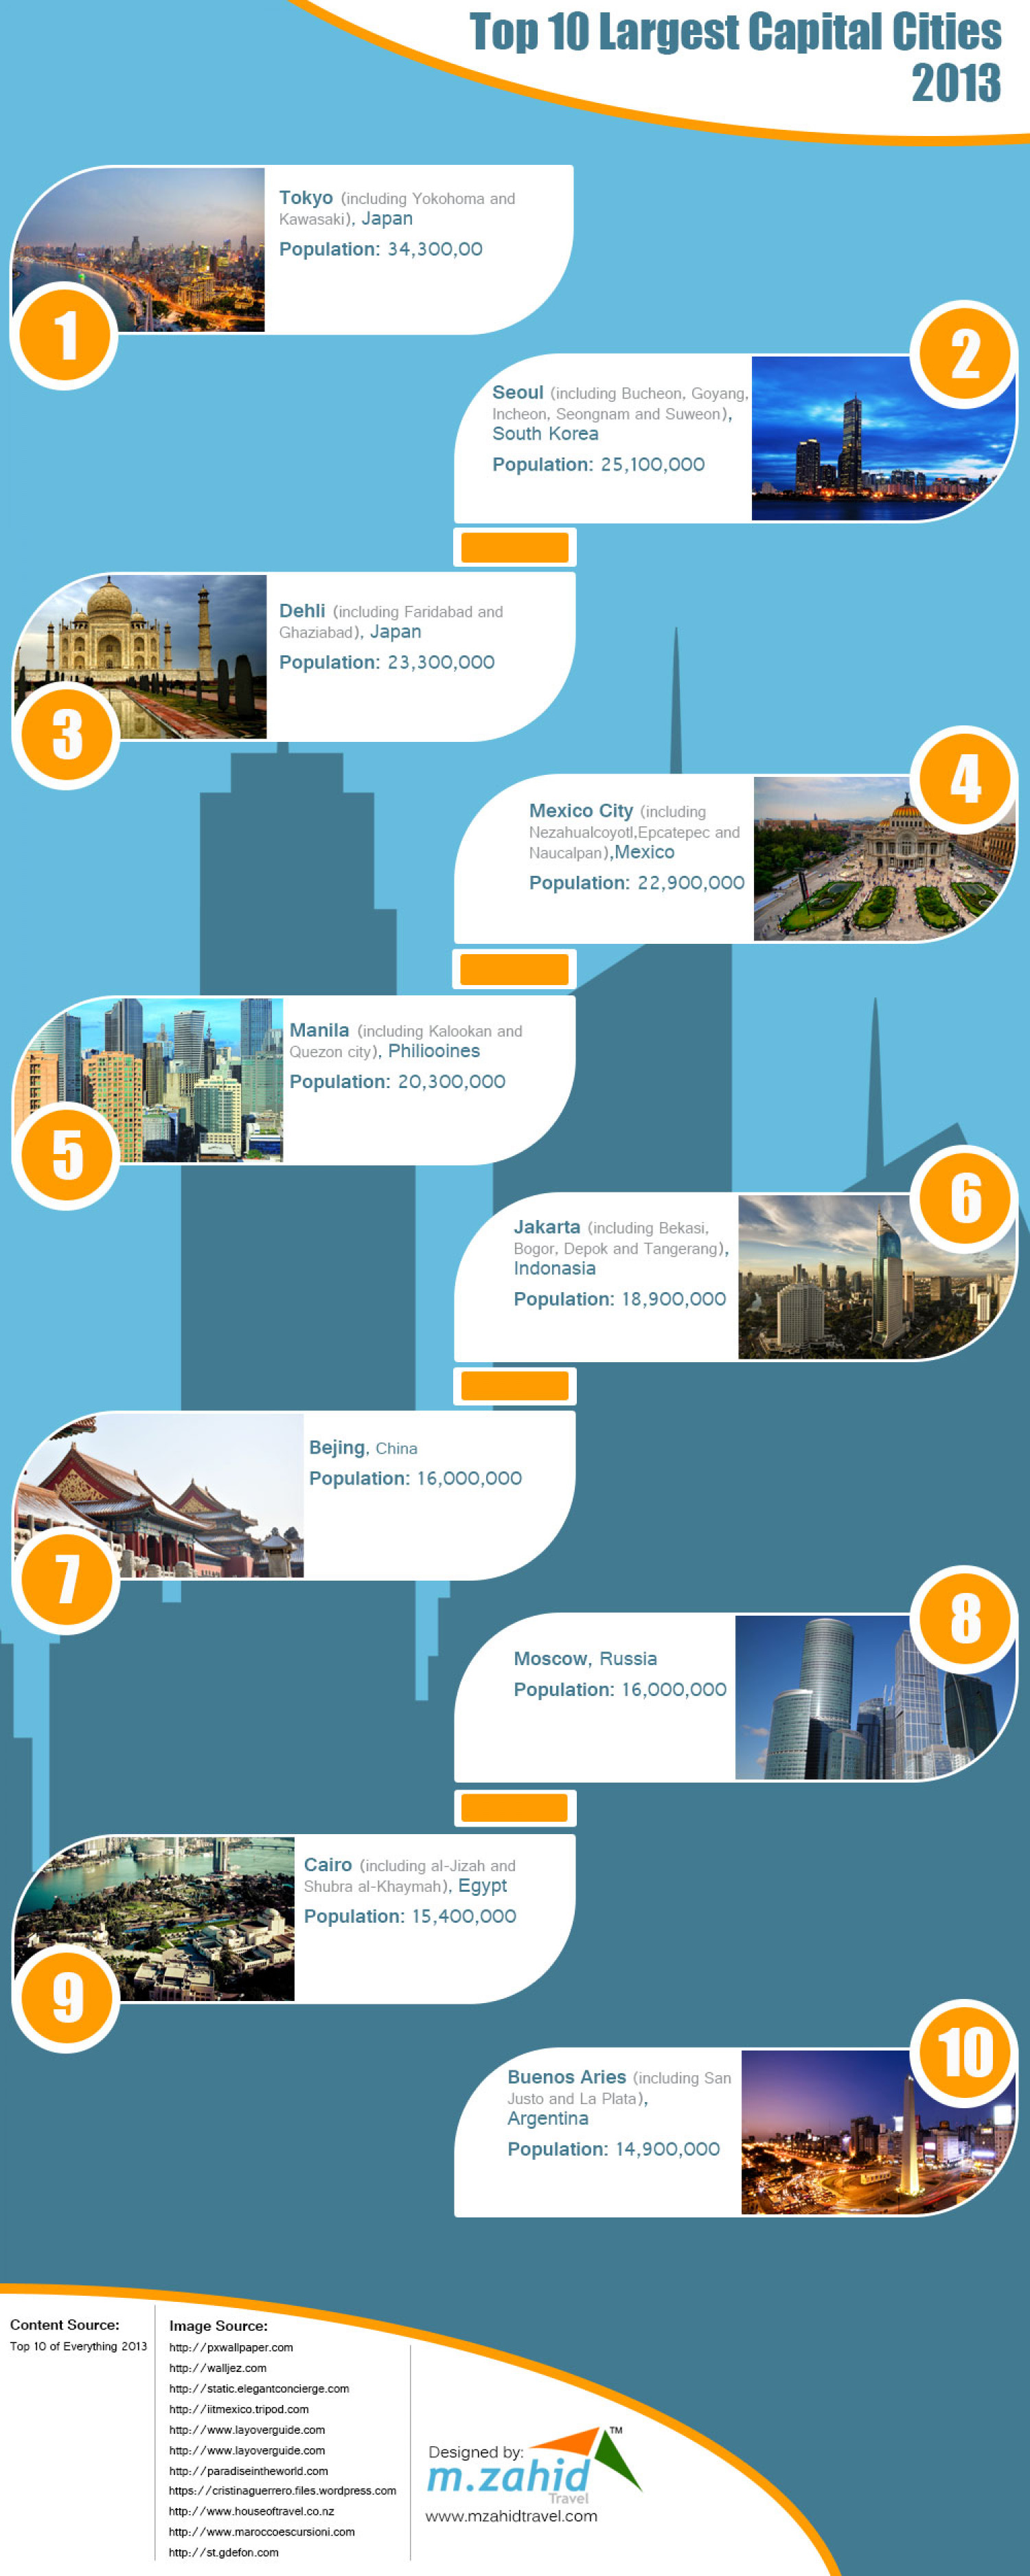 Top 10 Largest Capital Cities 2013 Infographic